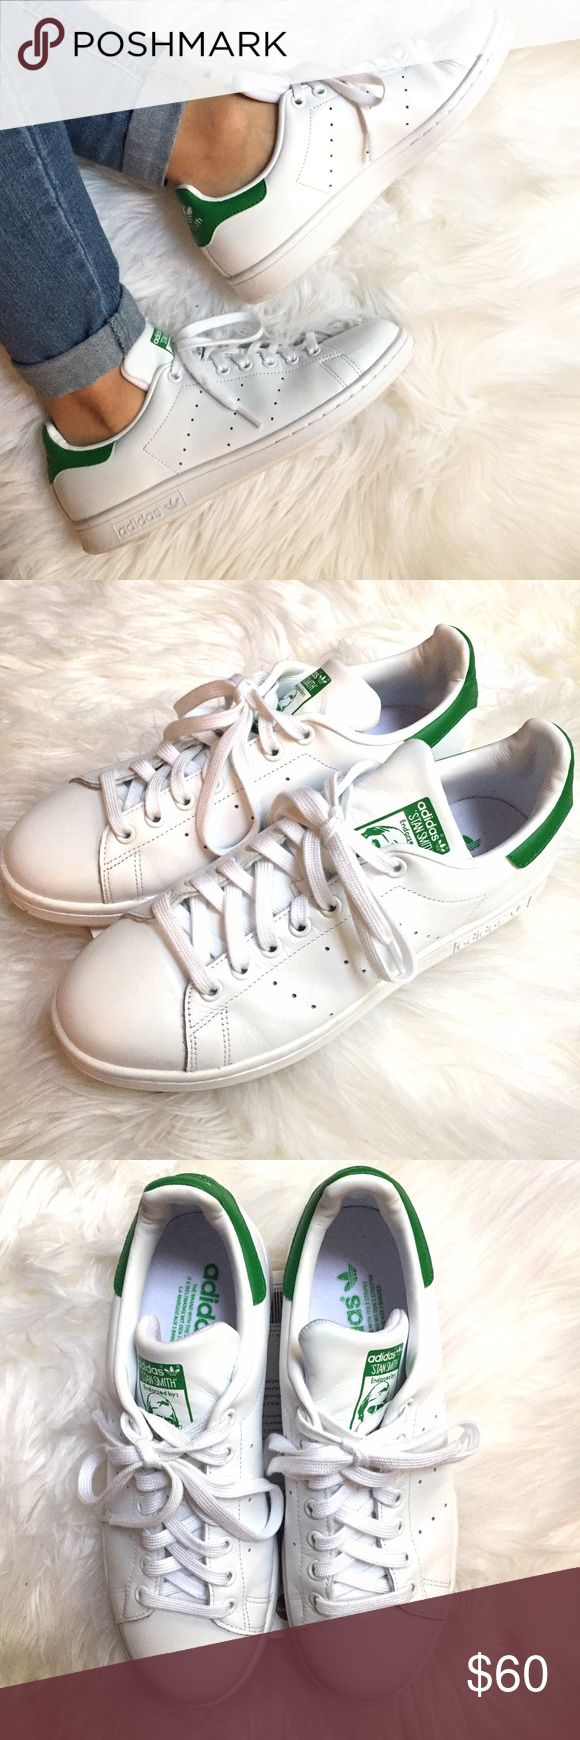 Adidas Stan Smith Sneakers Grab this pair of Adidas Stan Smith Sneakers! In like-new condition, with minimal wear. Women's size 9. White/Green color.   10% off bundles of 2 or more items No Trades Reasonable offers accepted Fast Shipping  Please comment with any questions! Adidas Shoes Athletic Shoes